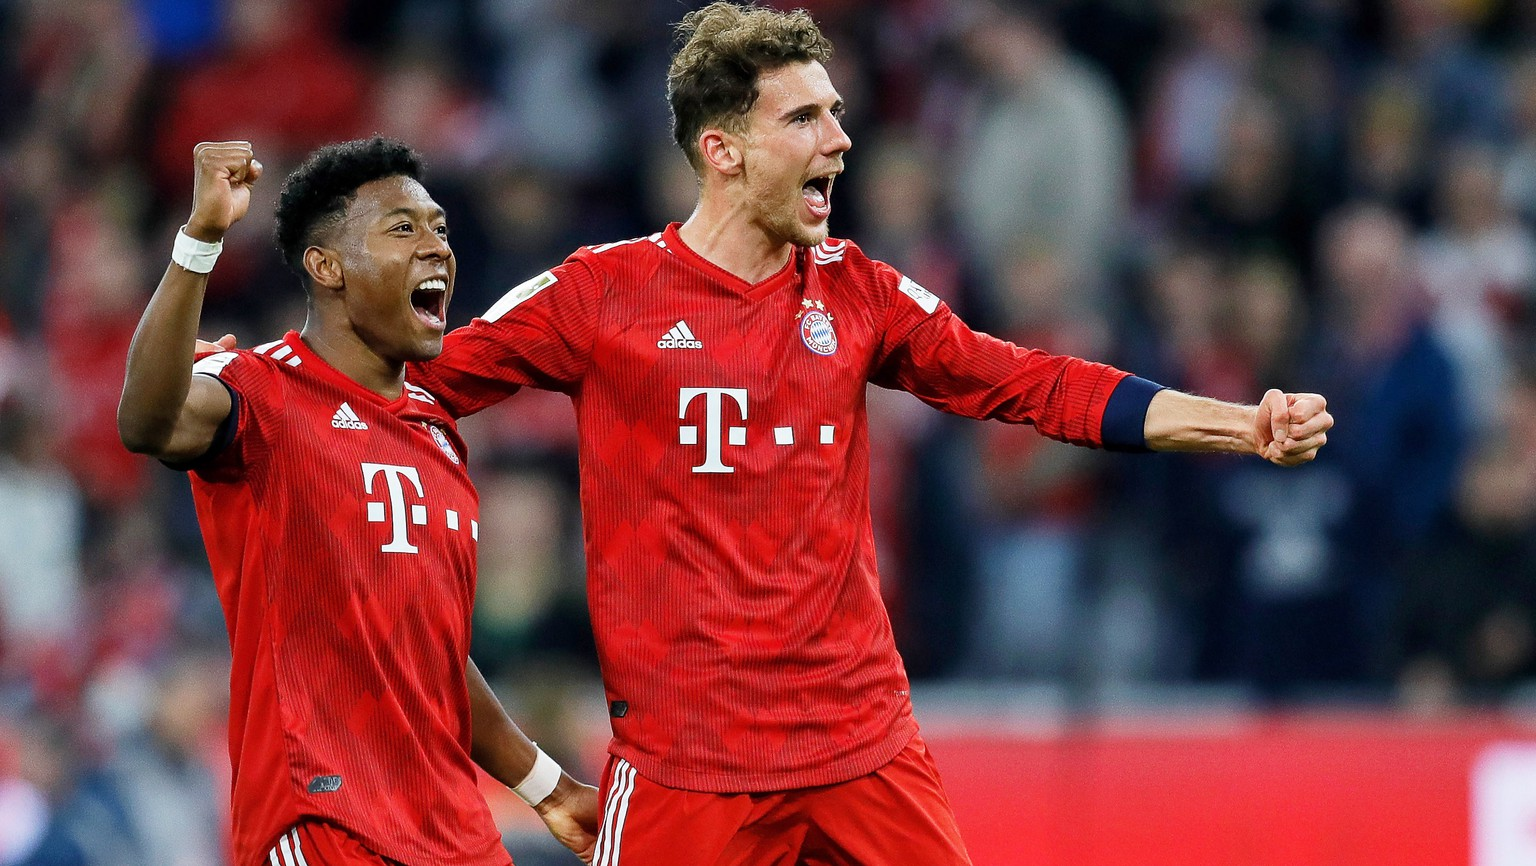 epa07489333 Bayern players David Alaba (L) and Leon Goretzka (R) celebrate after winning the German Bundesliga soccer match between FC Bayern Munich and Borussia Dortmund in Munich, Germany, 06 April 2019.  EPA/RONALD WITTEK CONDITIONS - ATTENTION: The DFL regulations prohibit any use of photographs as image sequences and/or quasi-video.